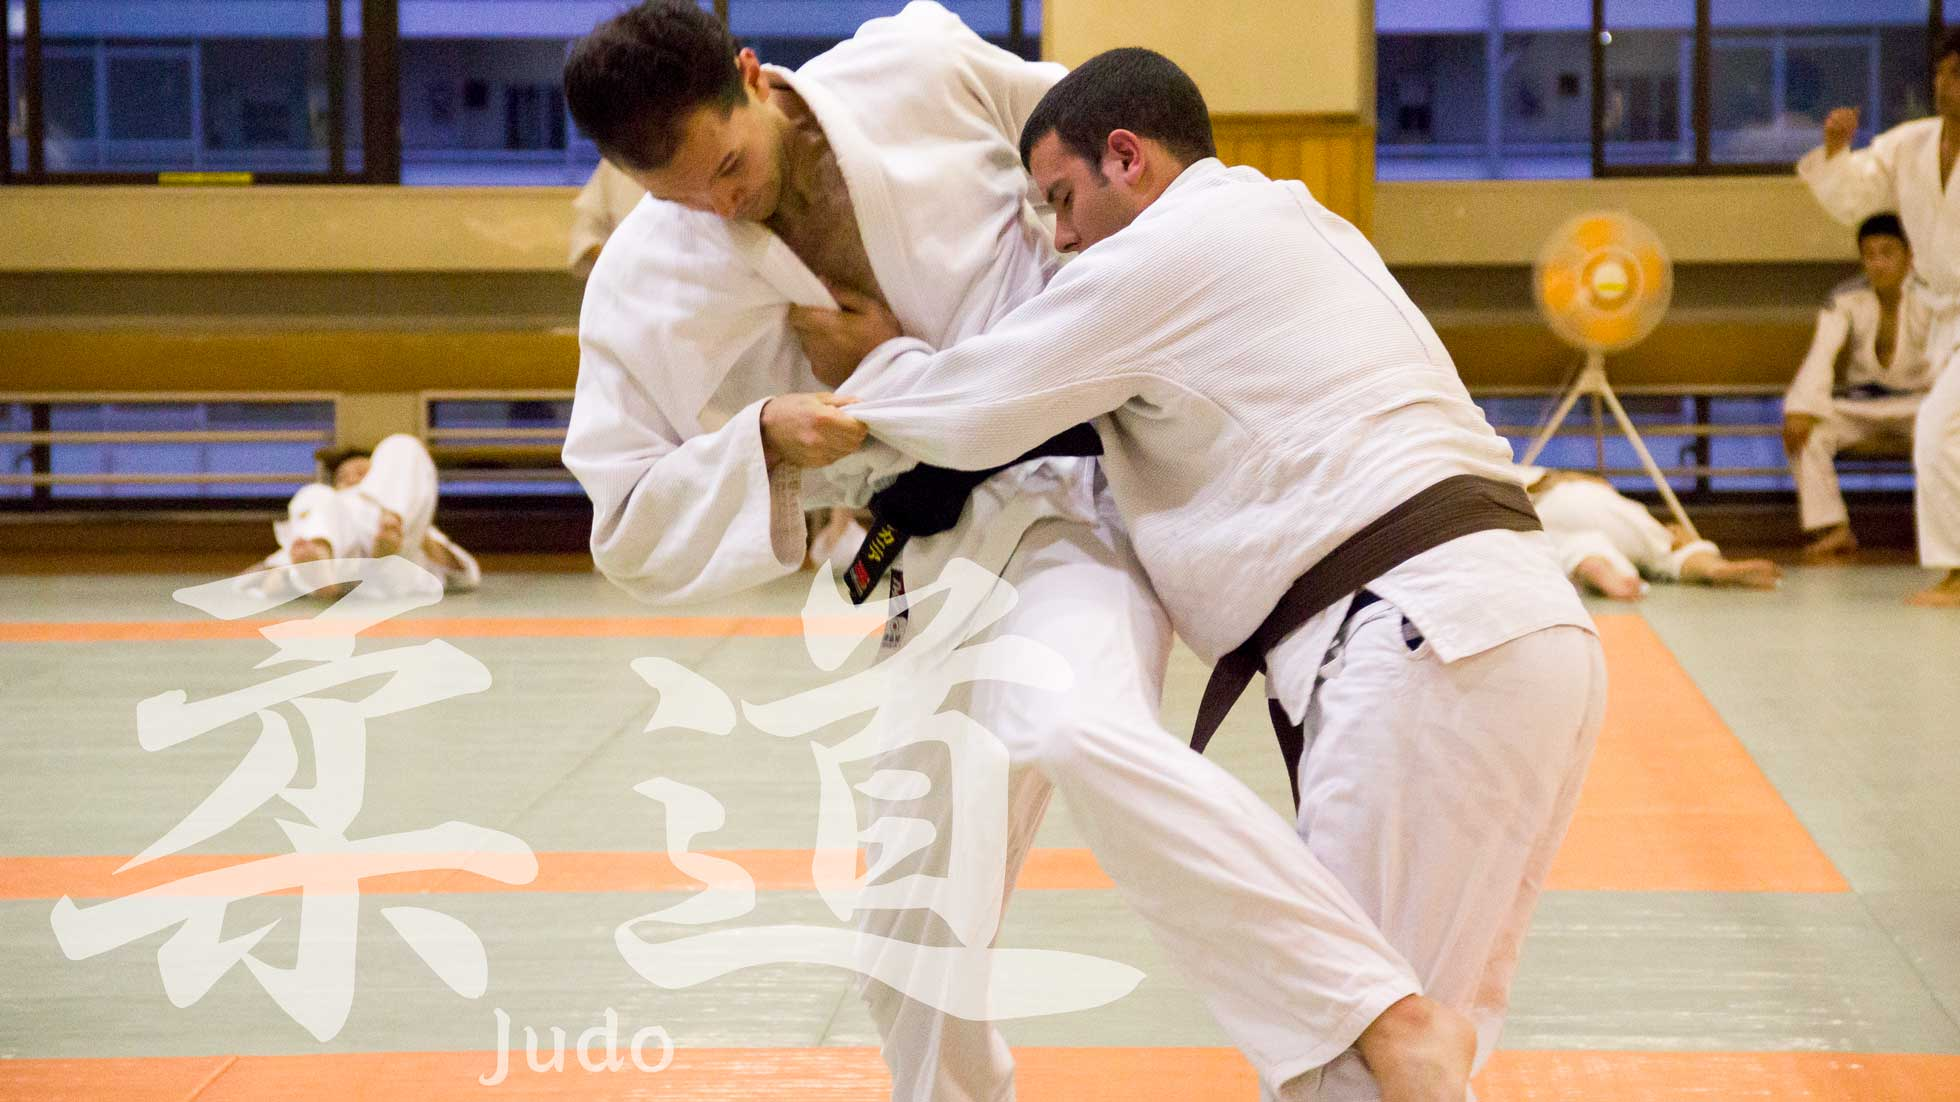 Japanese Judo course